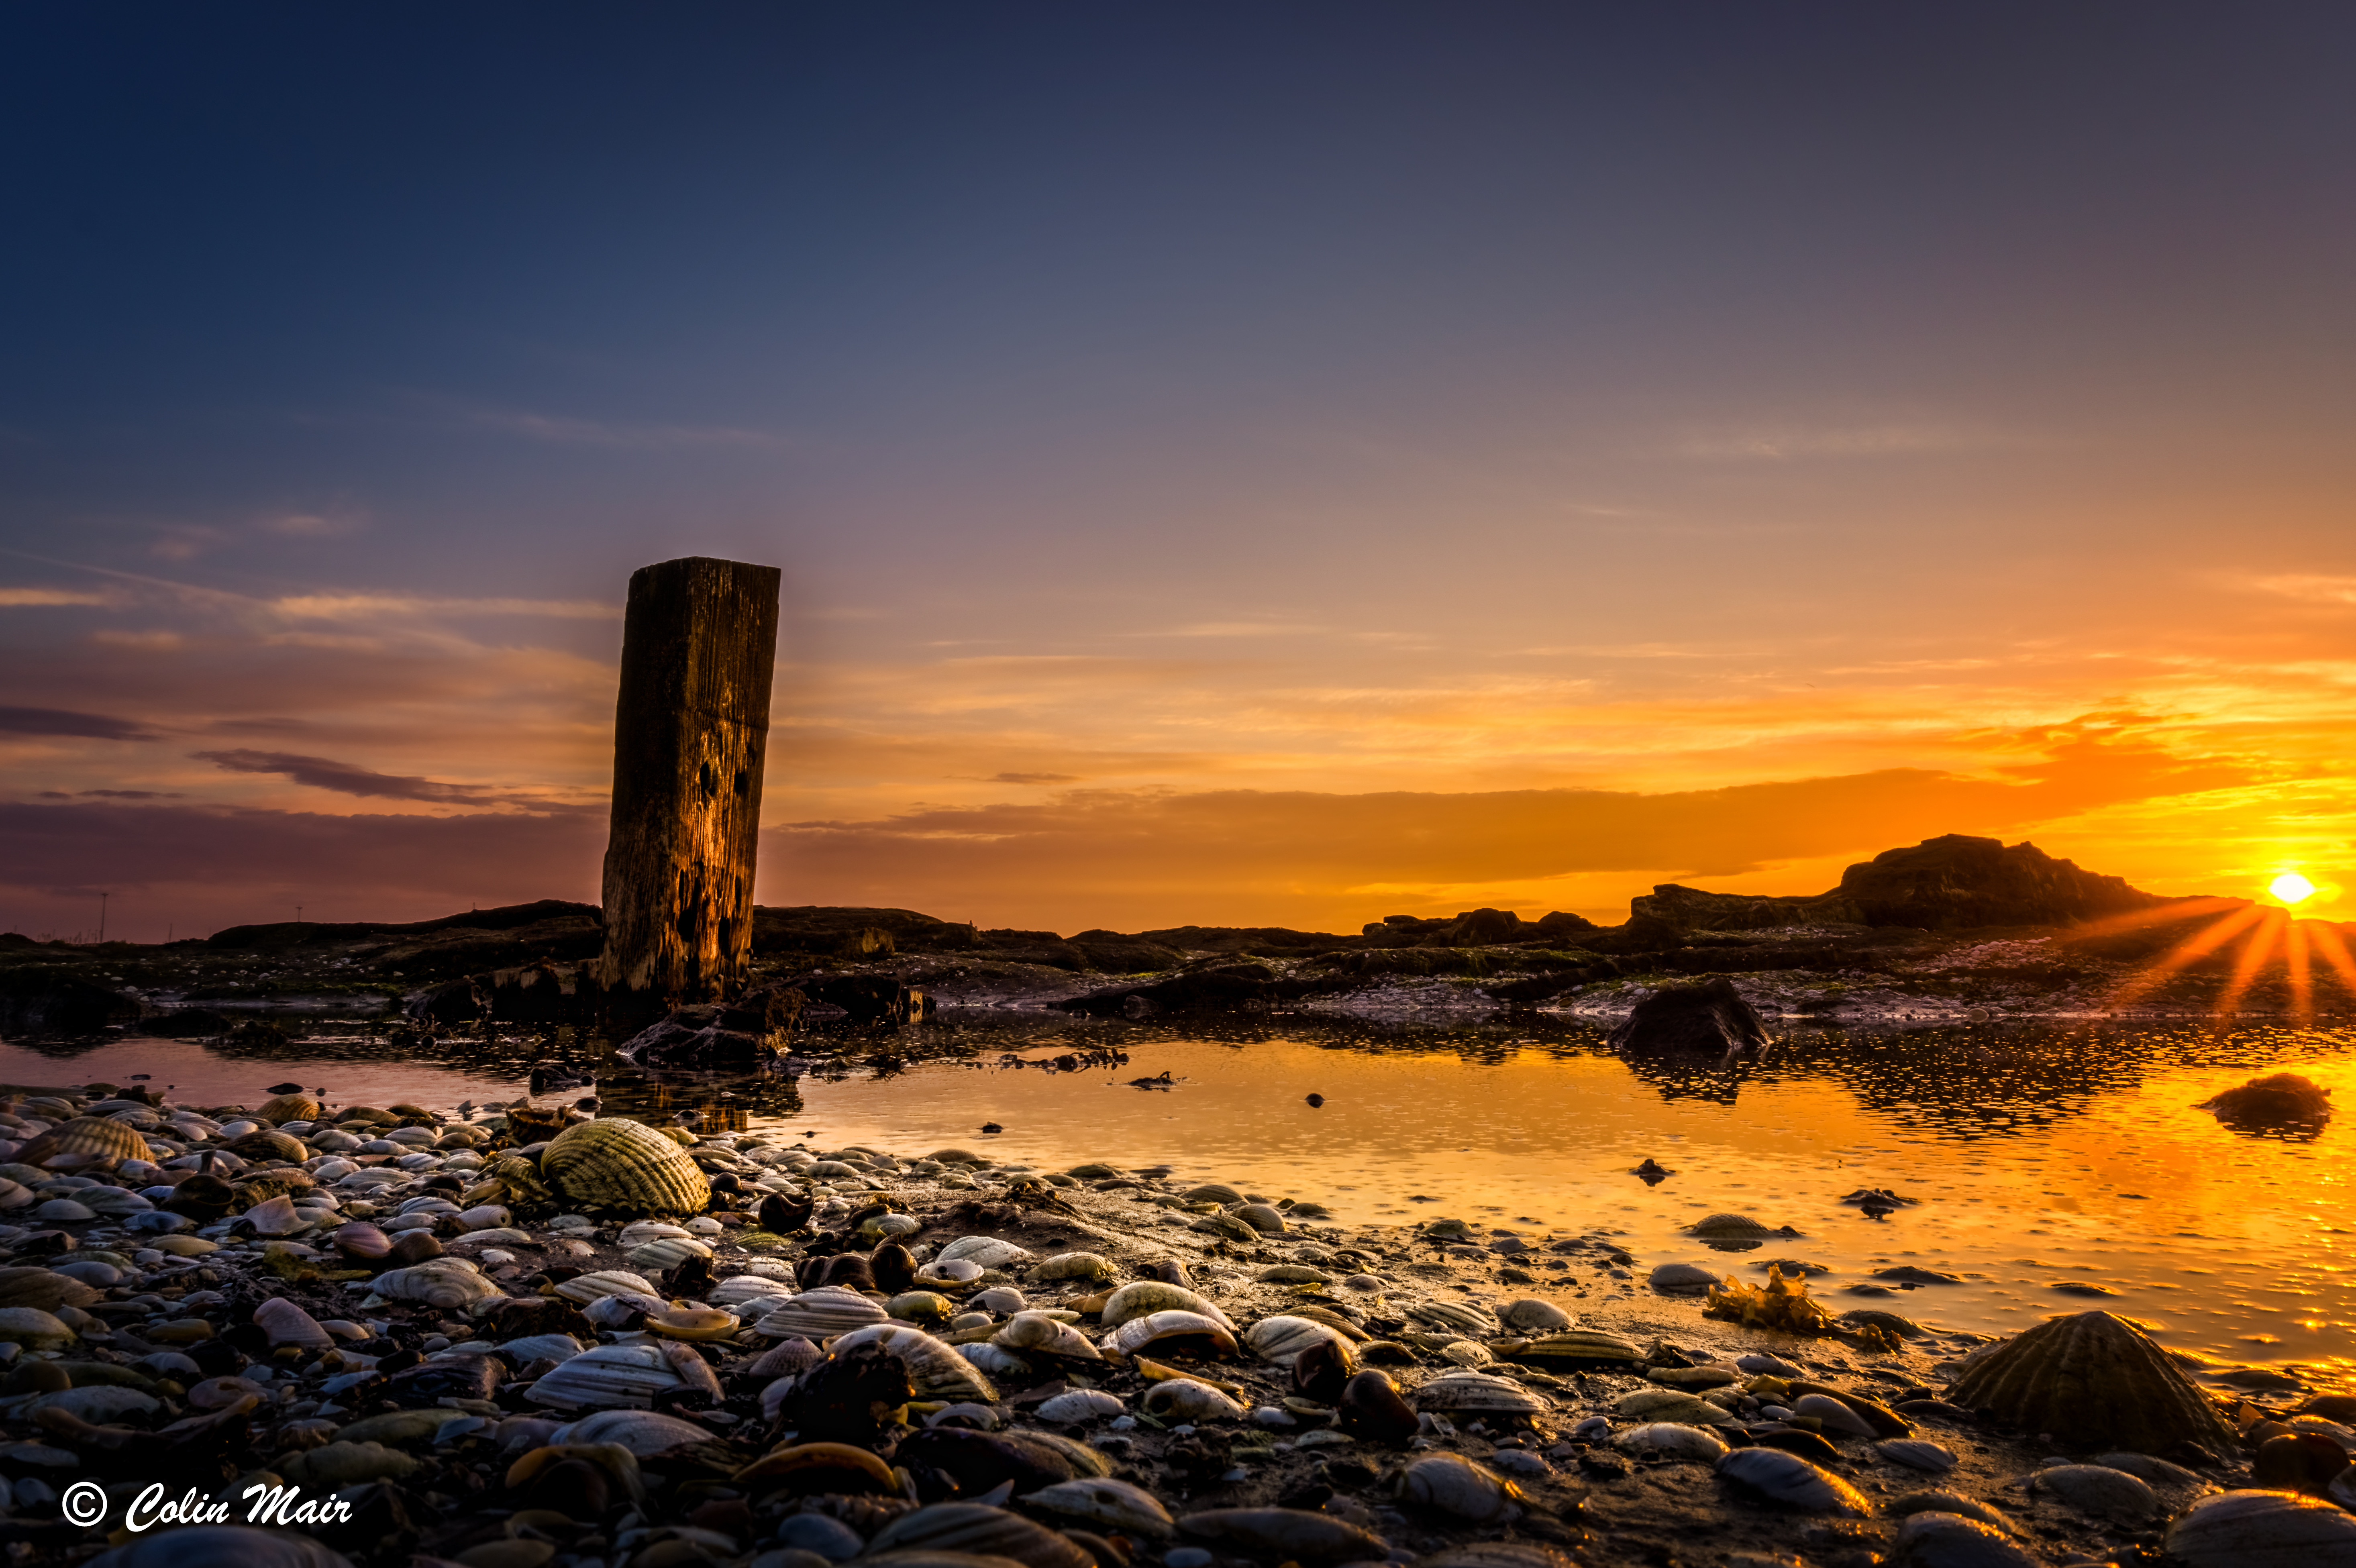 Sunset Log & Shells - 2017-06-02nd, HDR, Troon, Ayrshire, Scotland, UK